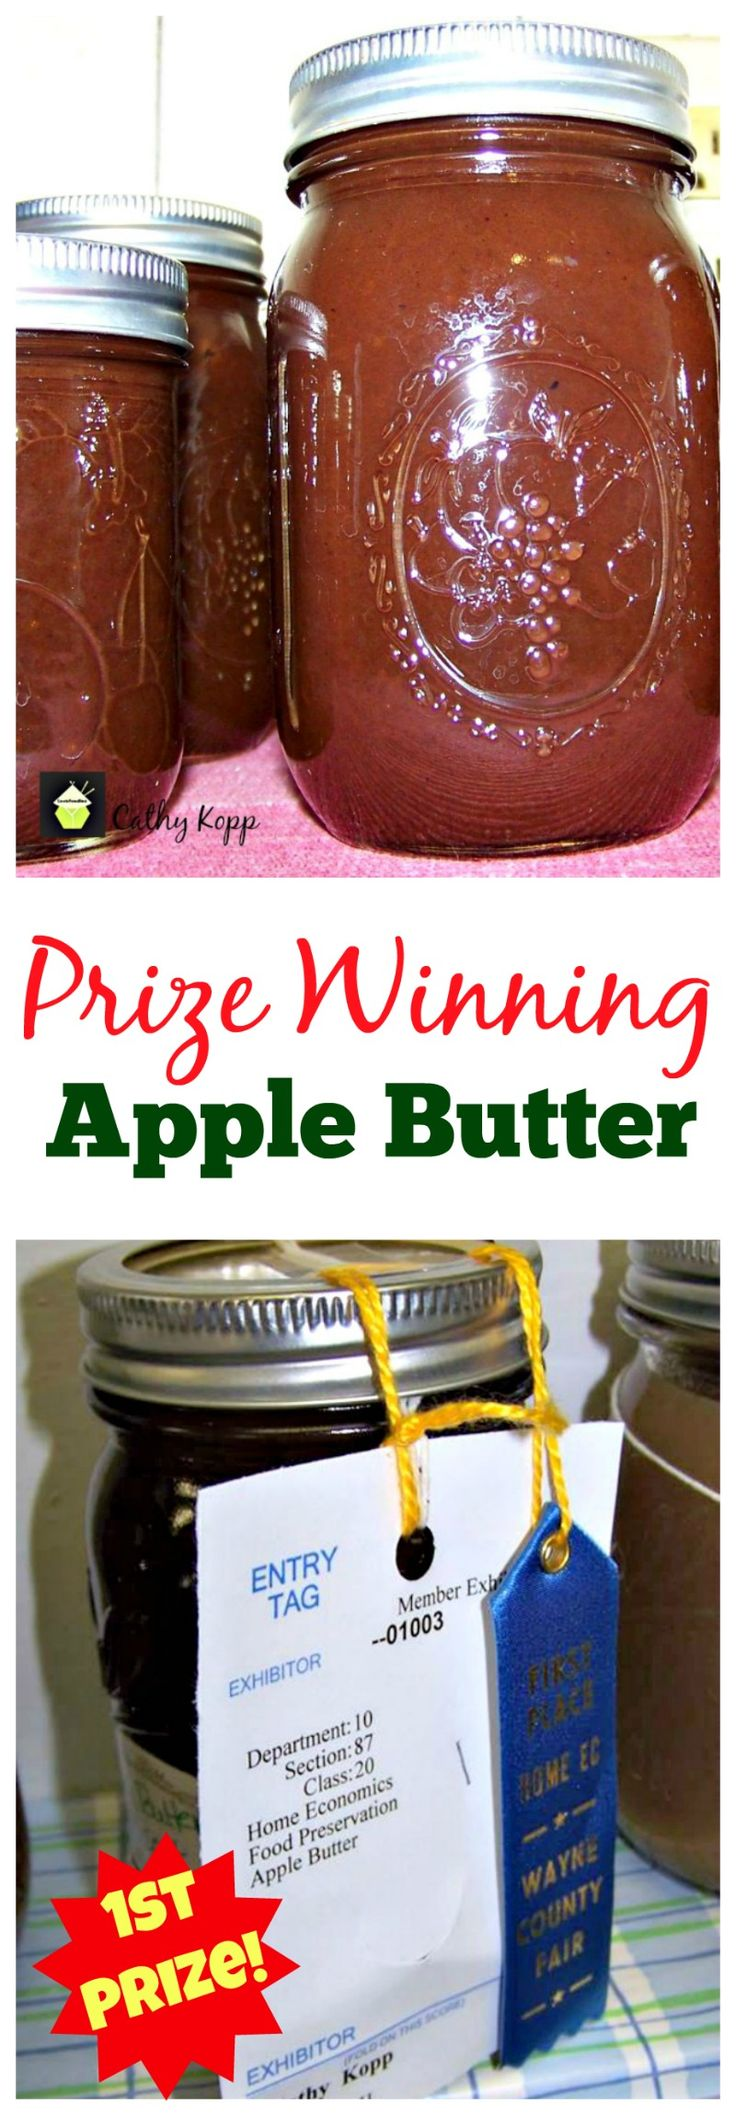 Prize Winning Apple Butter -Easy Crock Pot Recipe. Goes great with sweet or savory dishes. You choose! | Lovefoodies.com